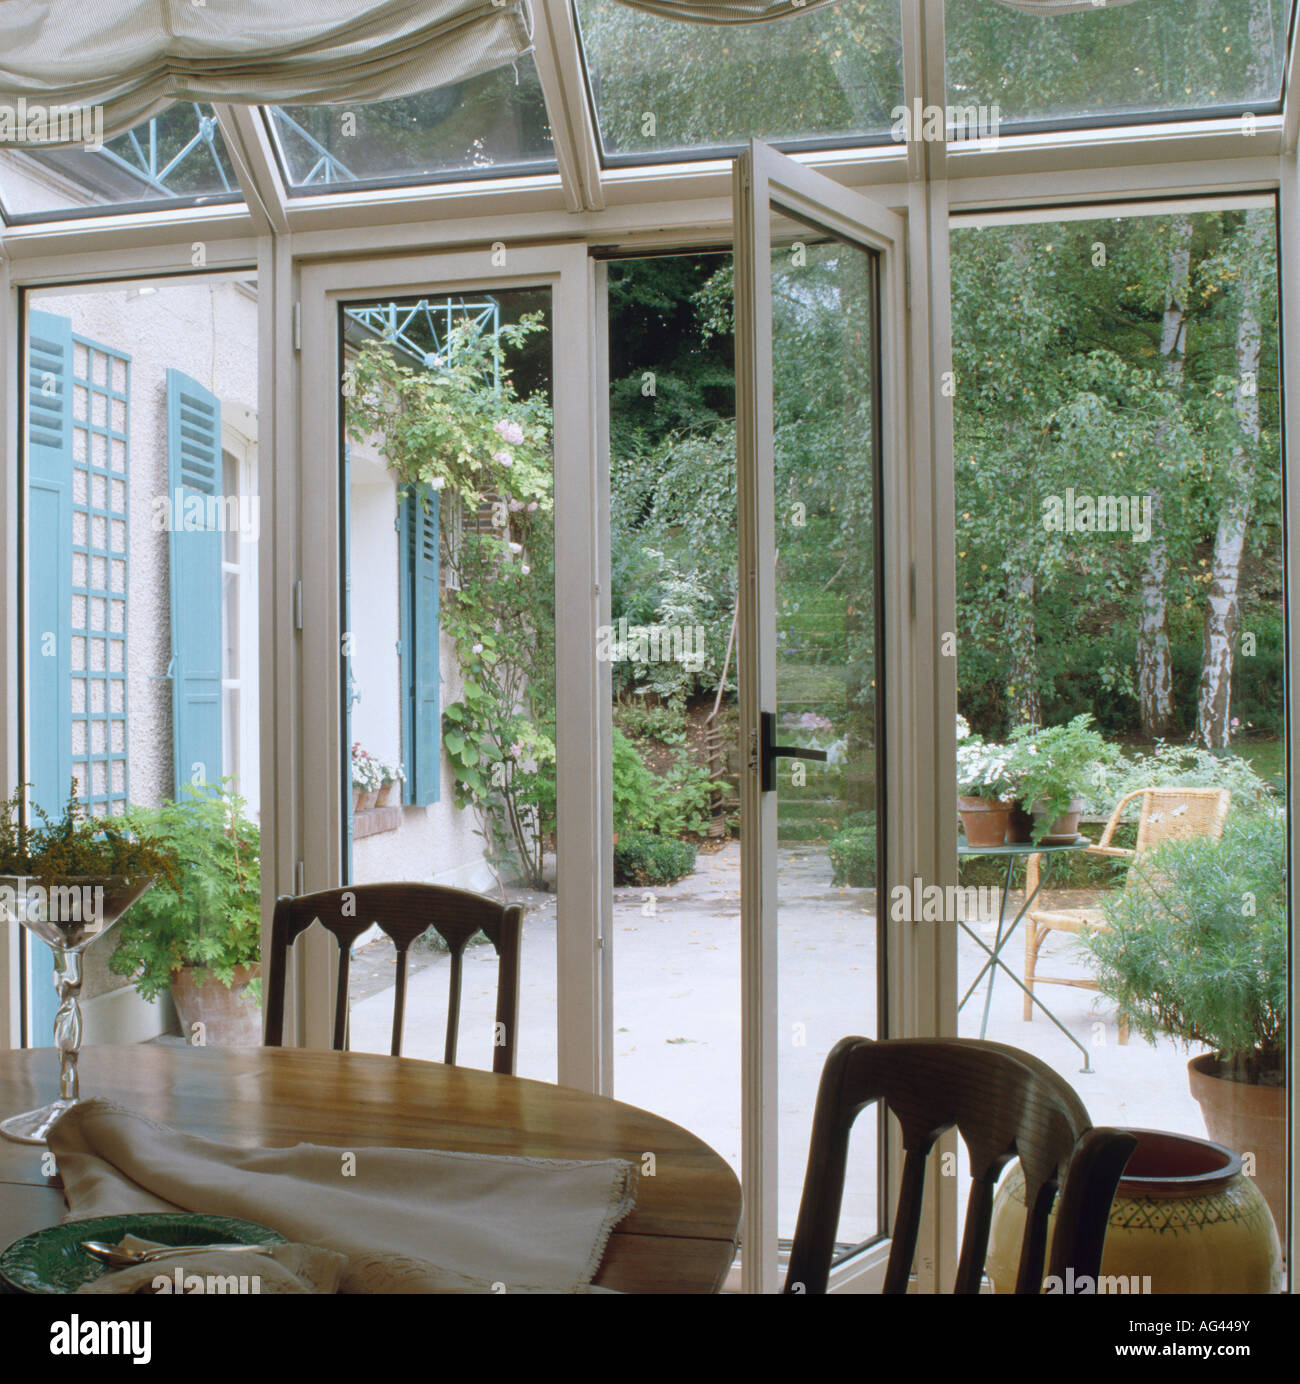 Glass French Doors In Conservatory Dining Room With View Of Patio Garden